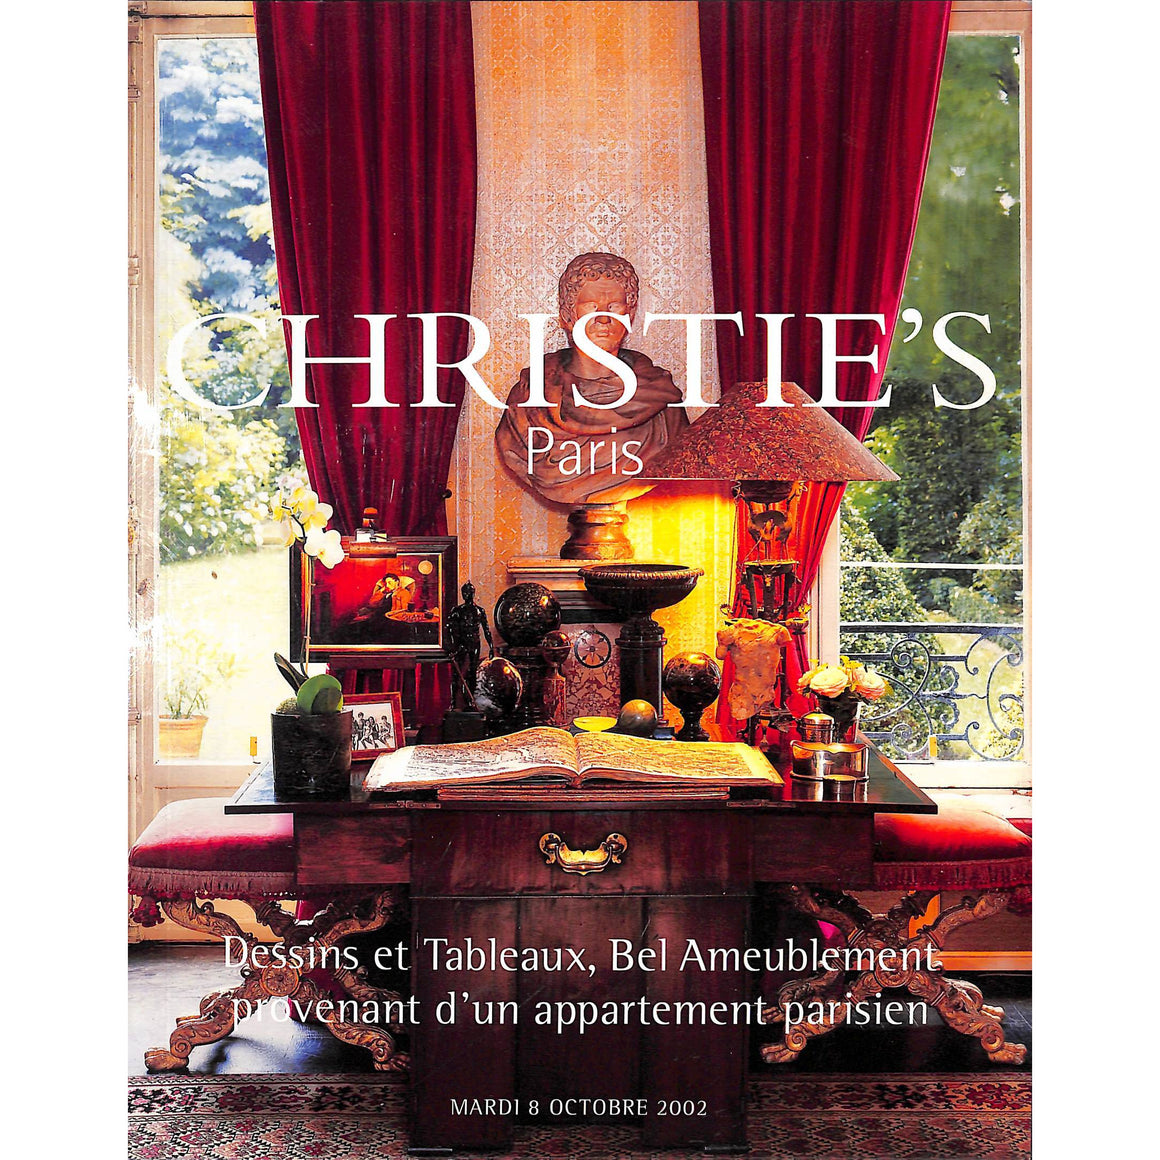 Christie's Paris October 8, 2002